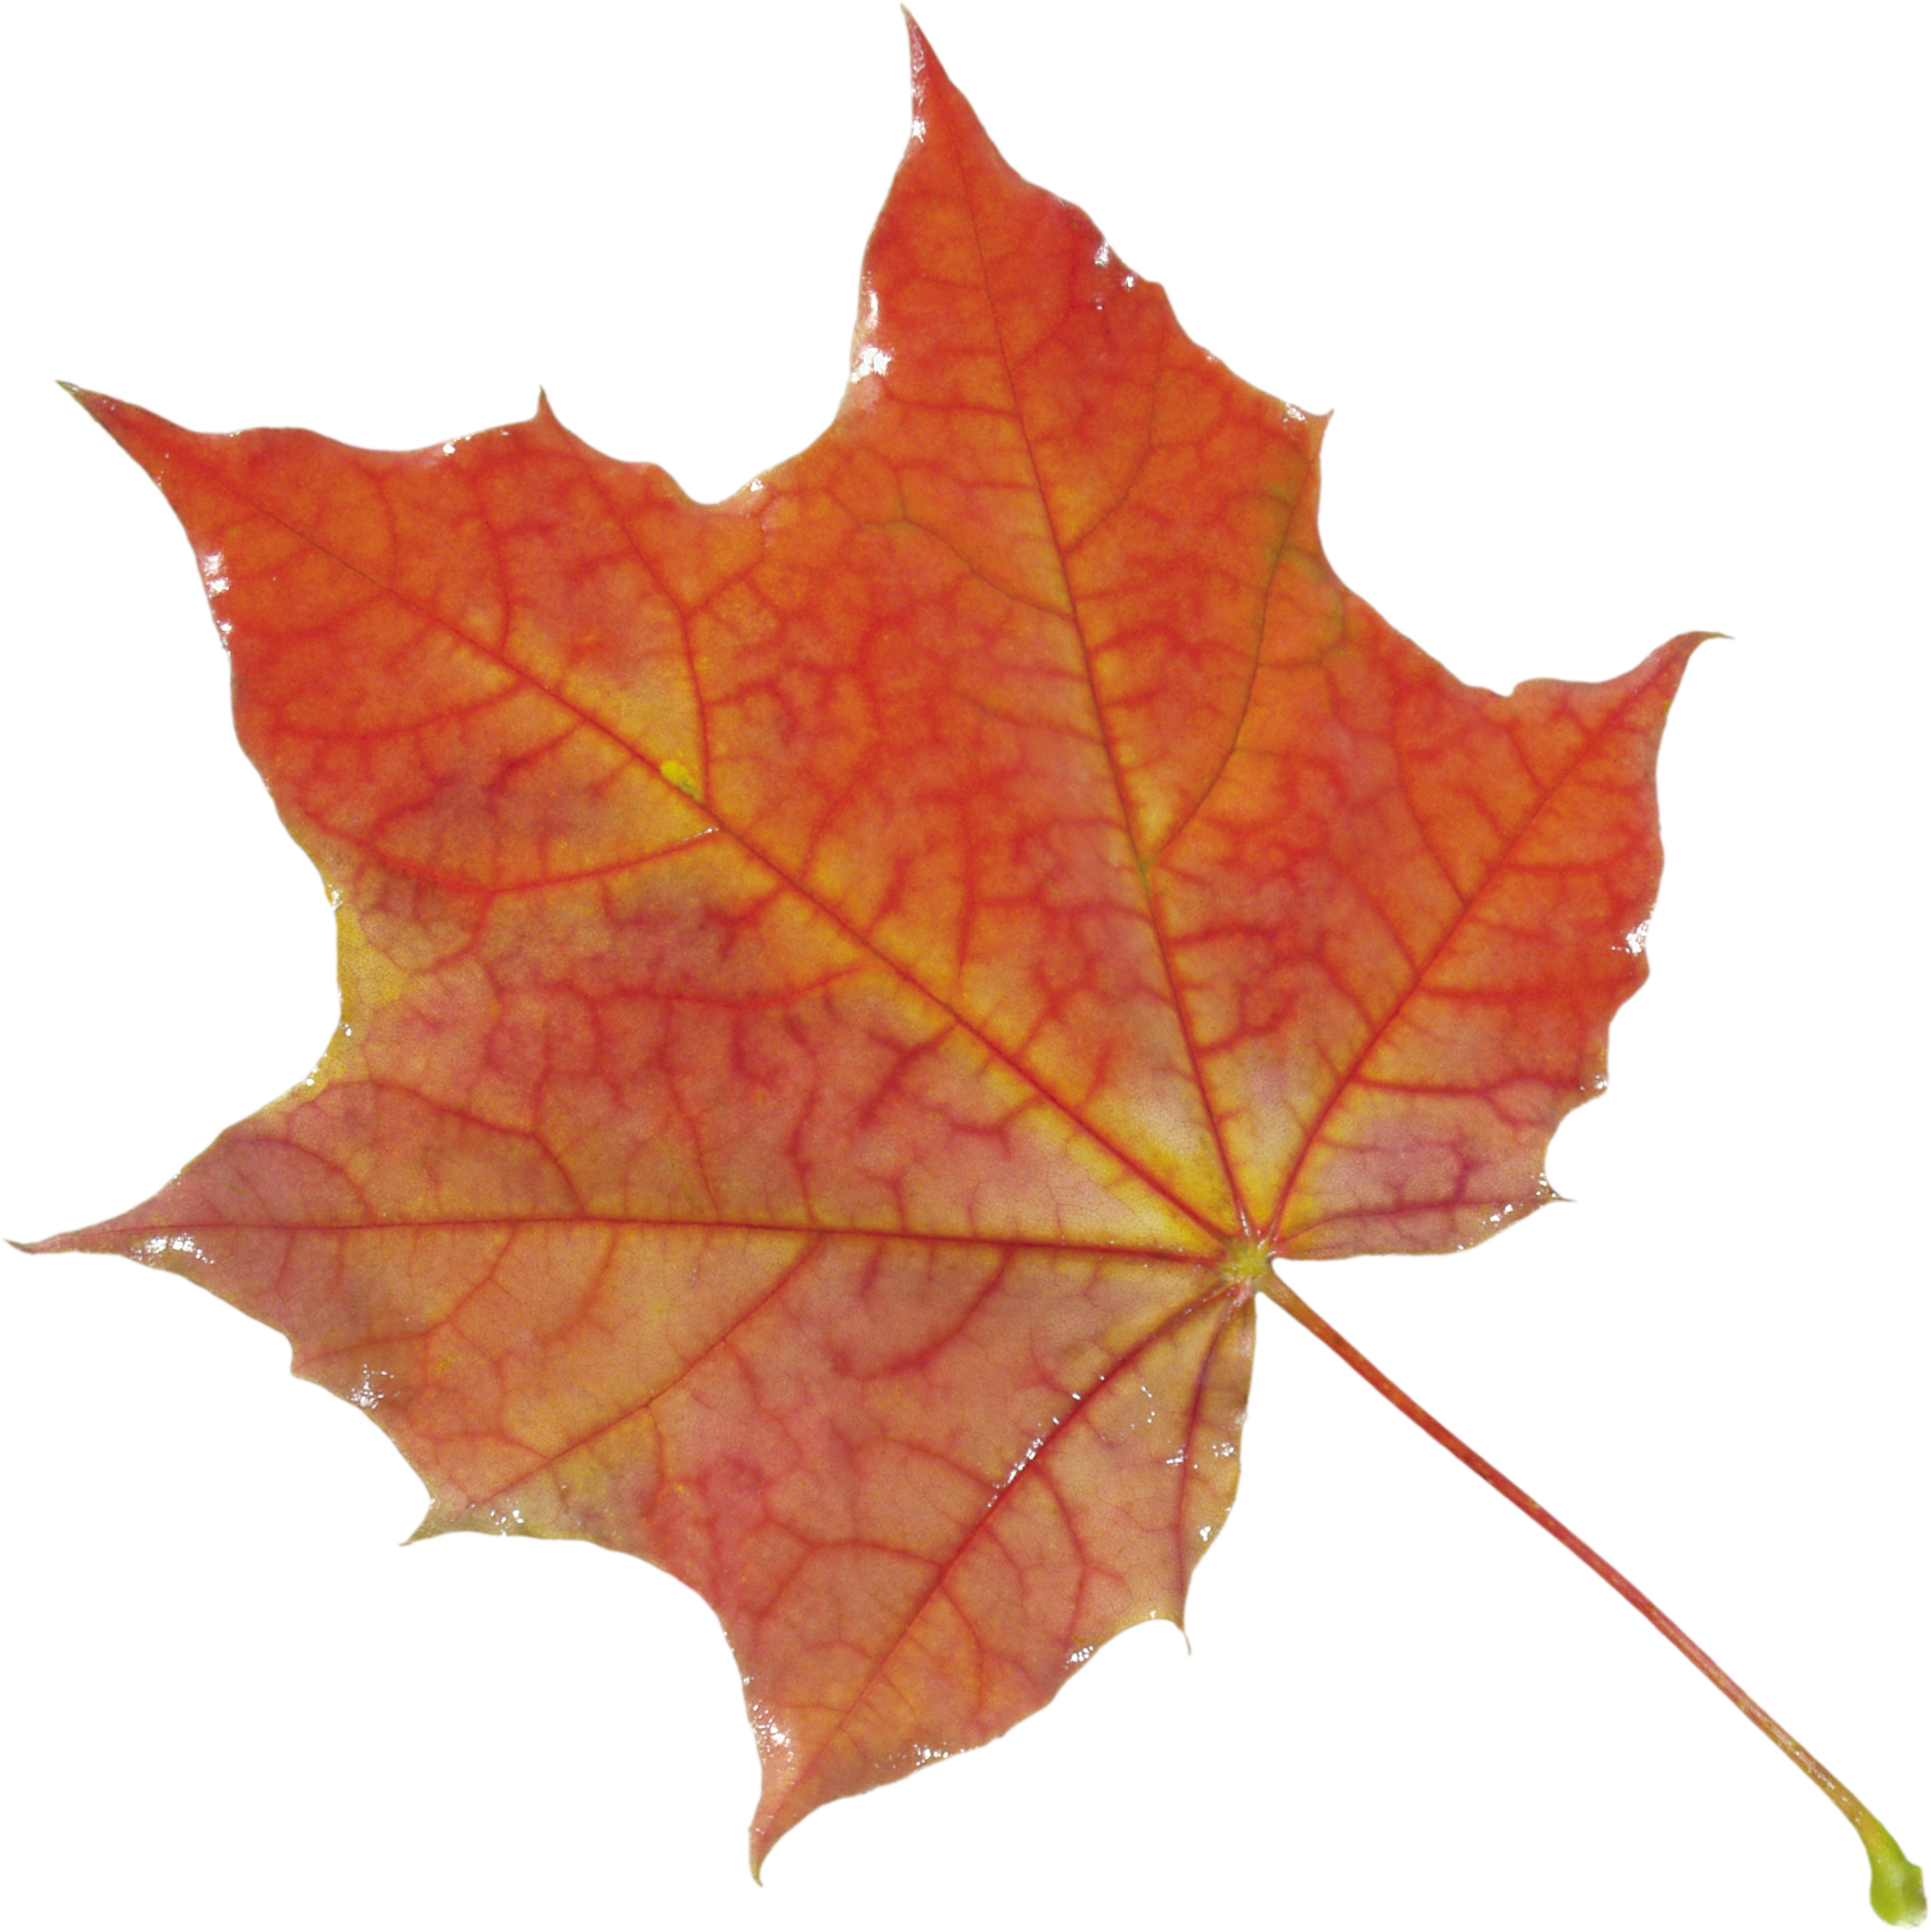 Autumn leaves falling png. Images free yellow pictures